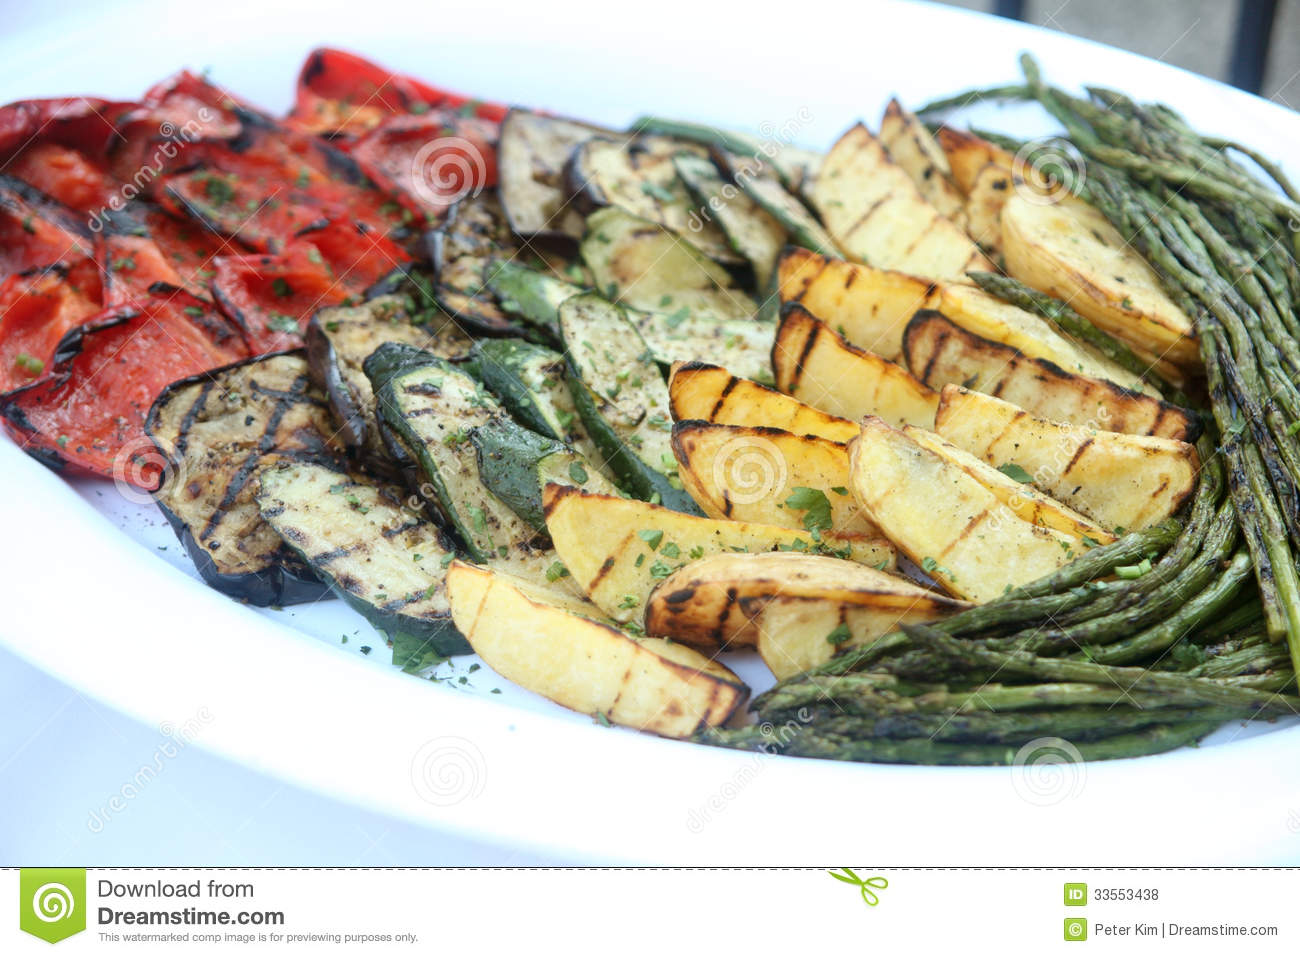 assorted-grilled-vegetables-plate-335534